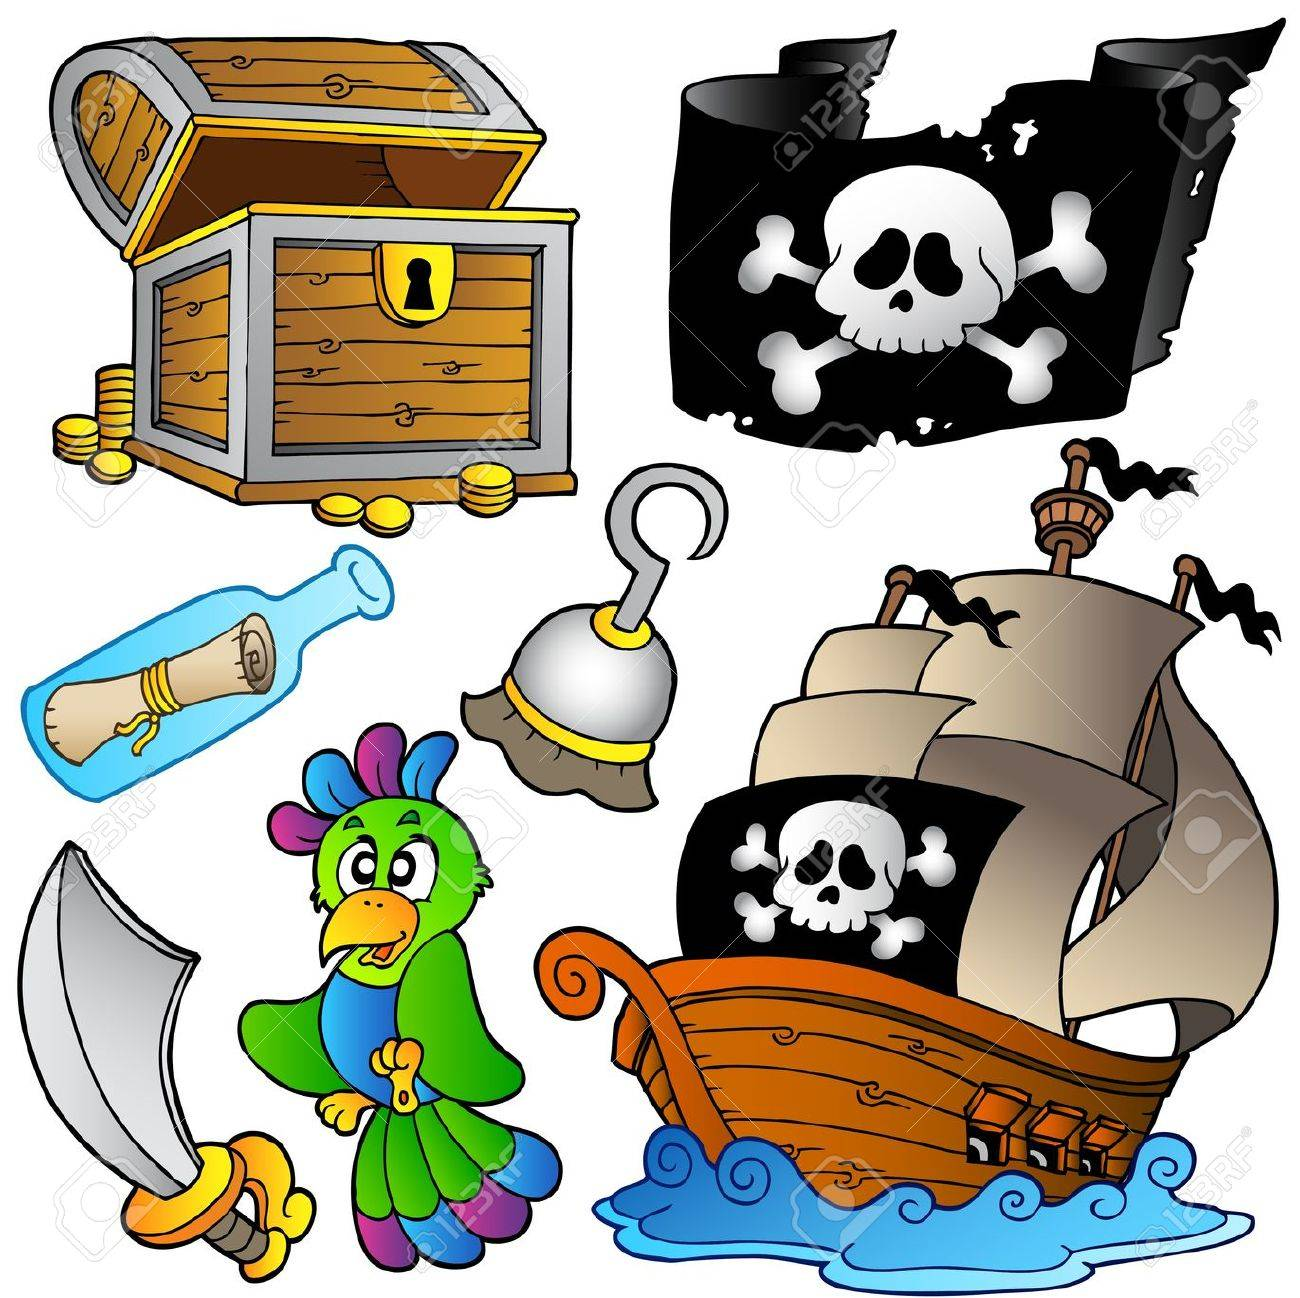 Pirate collection with wooden ship -   illustration. Stock Vector - 8195463